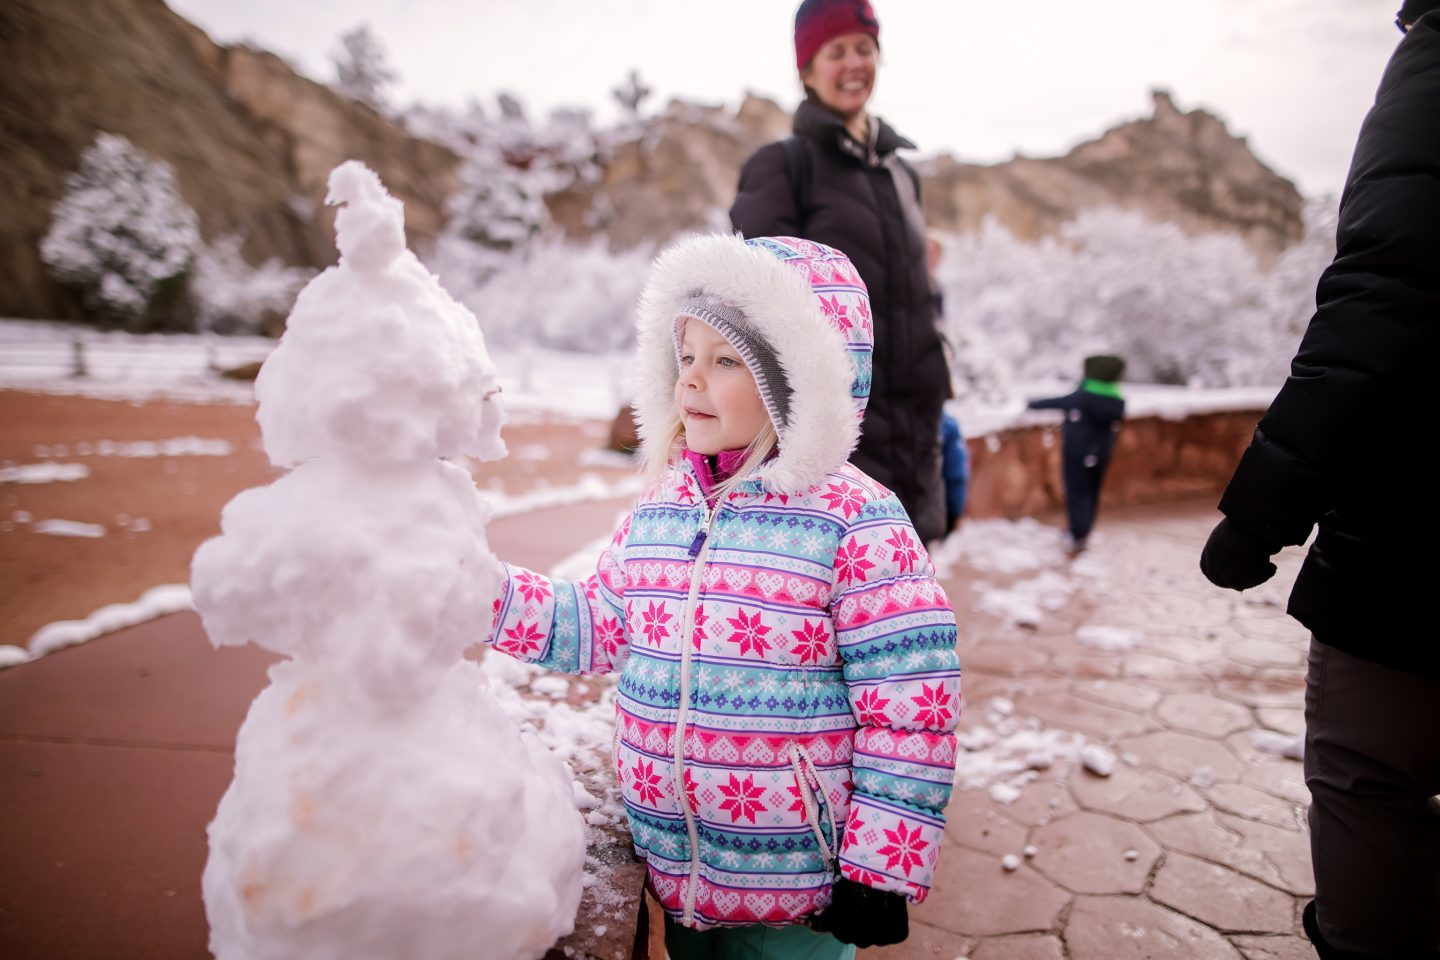 8 ways to get out and enjoy winter with kids by Tamara Johnson for Hike it Baby